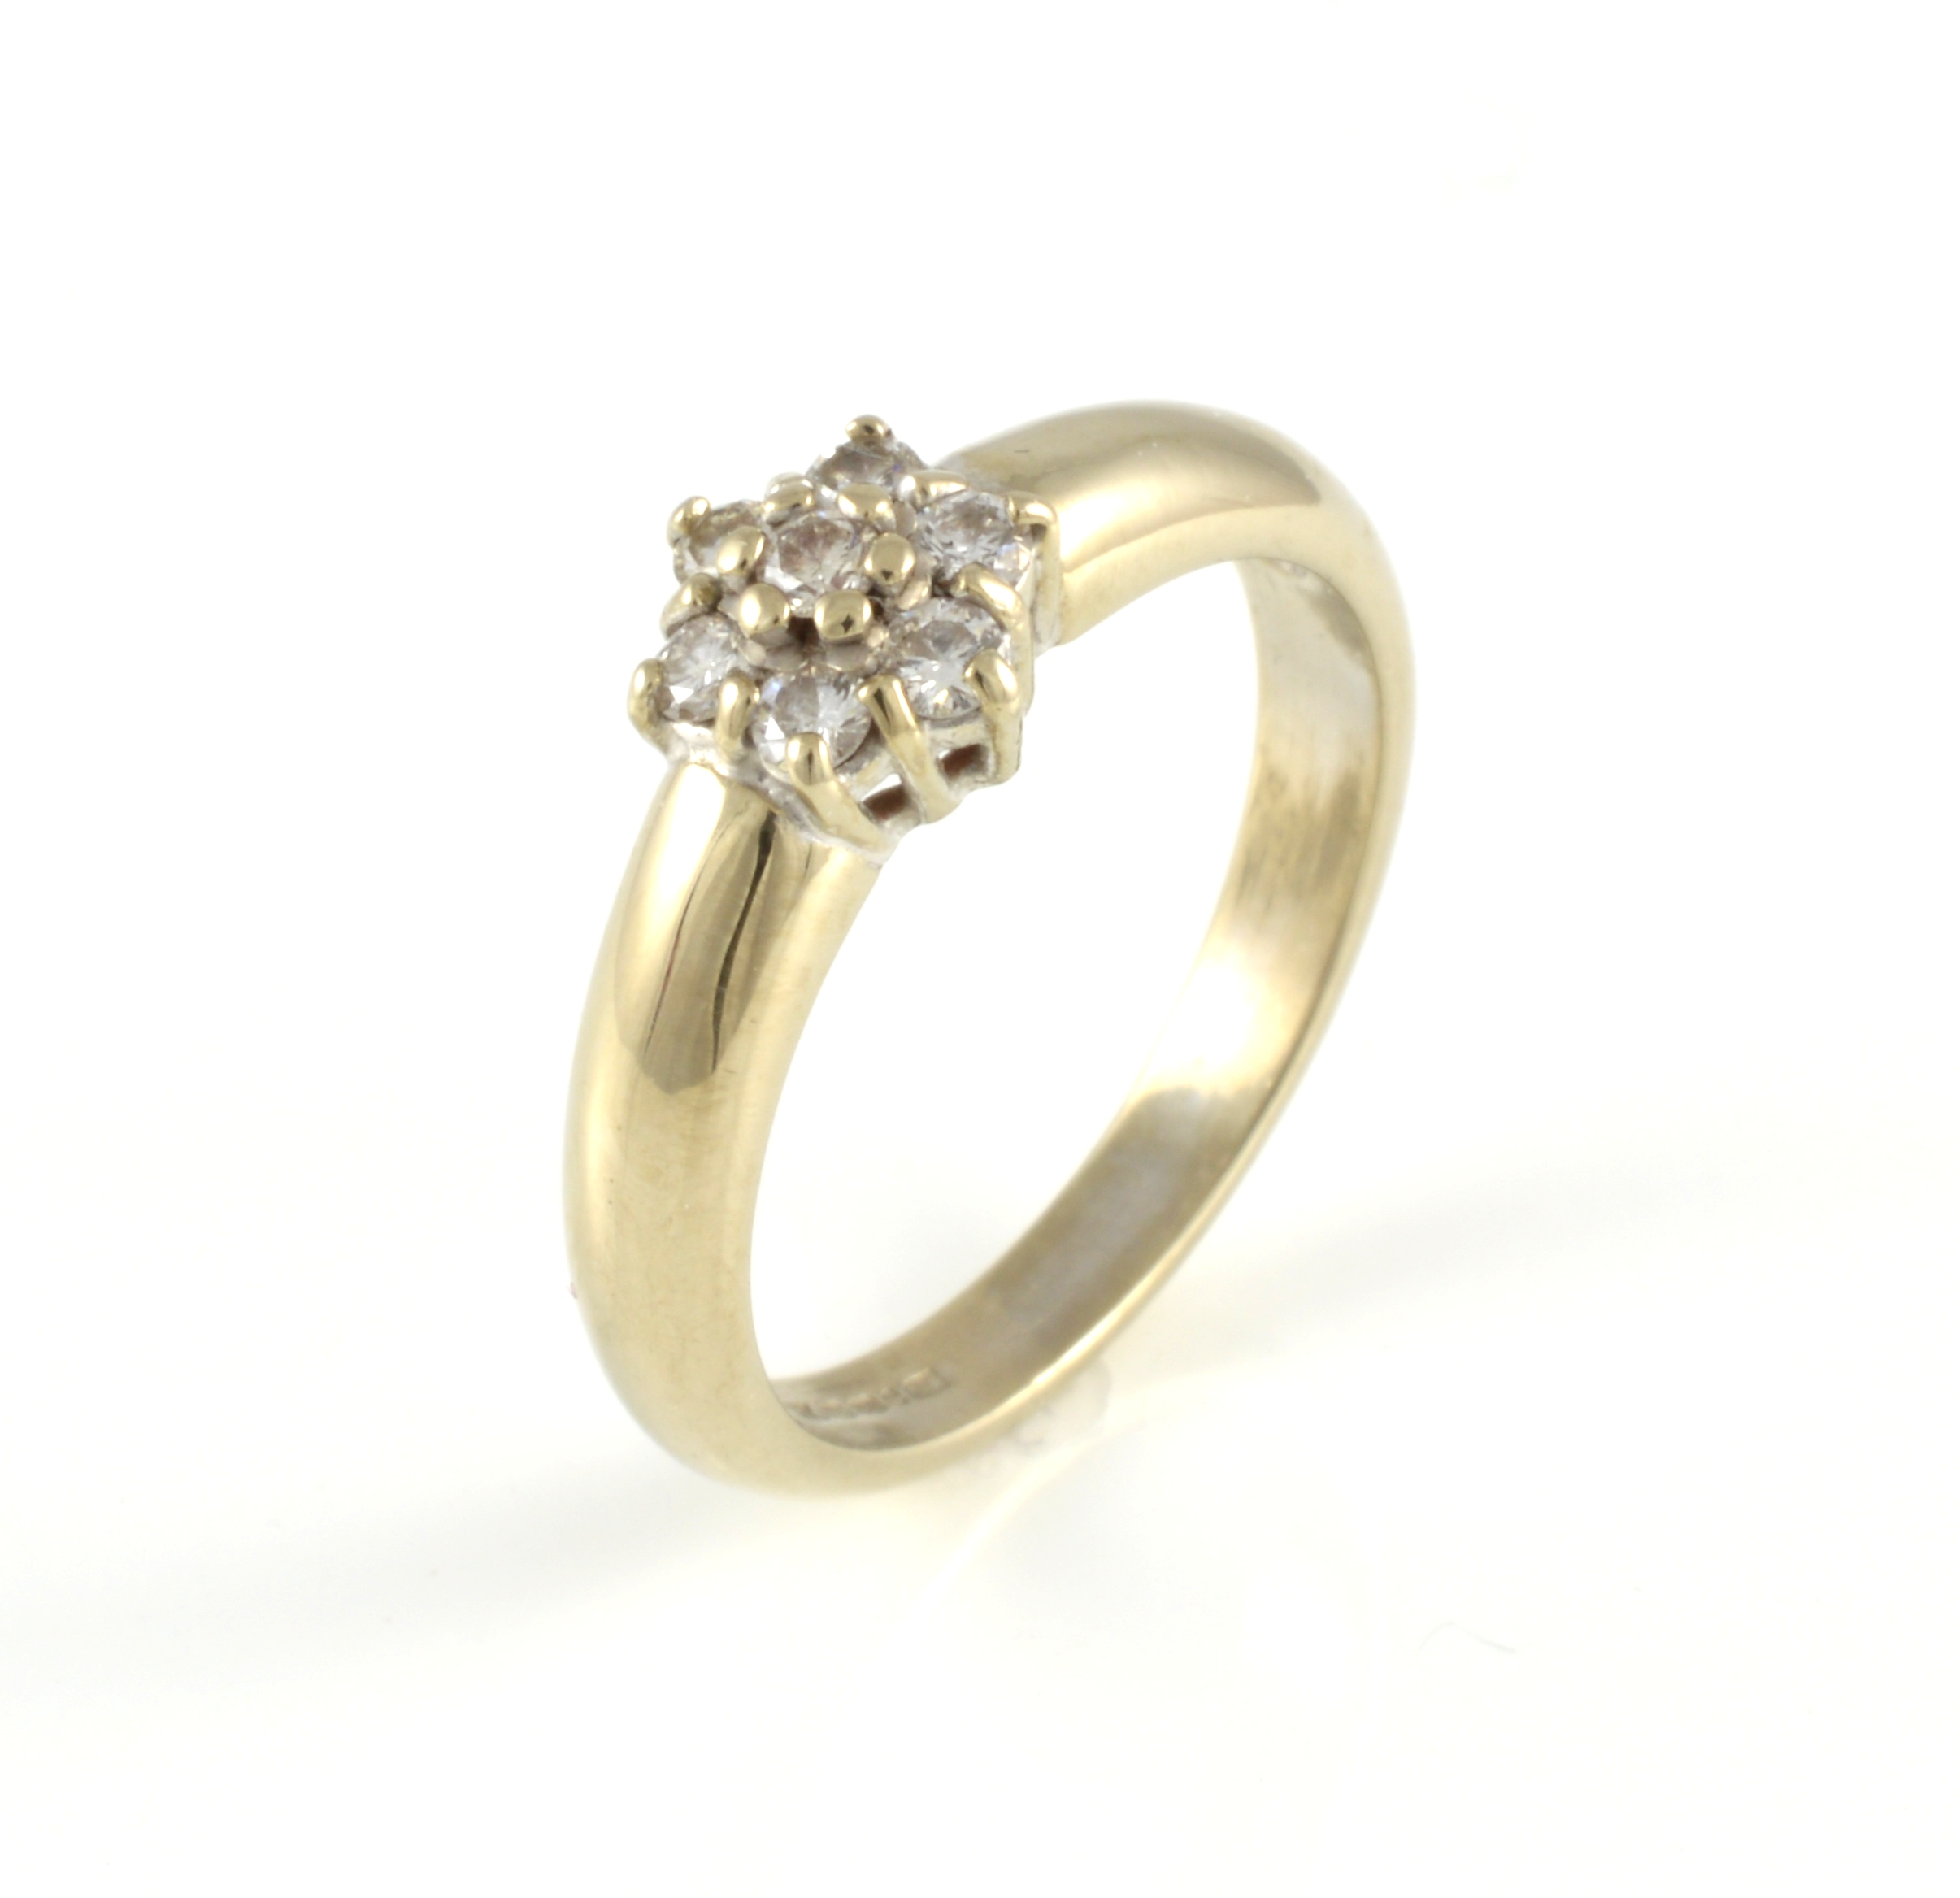 18ct white gold brilliant cut cluster ring